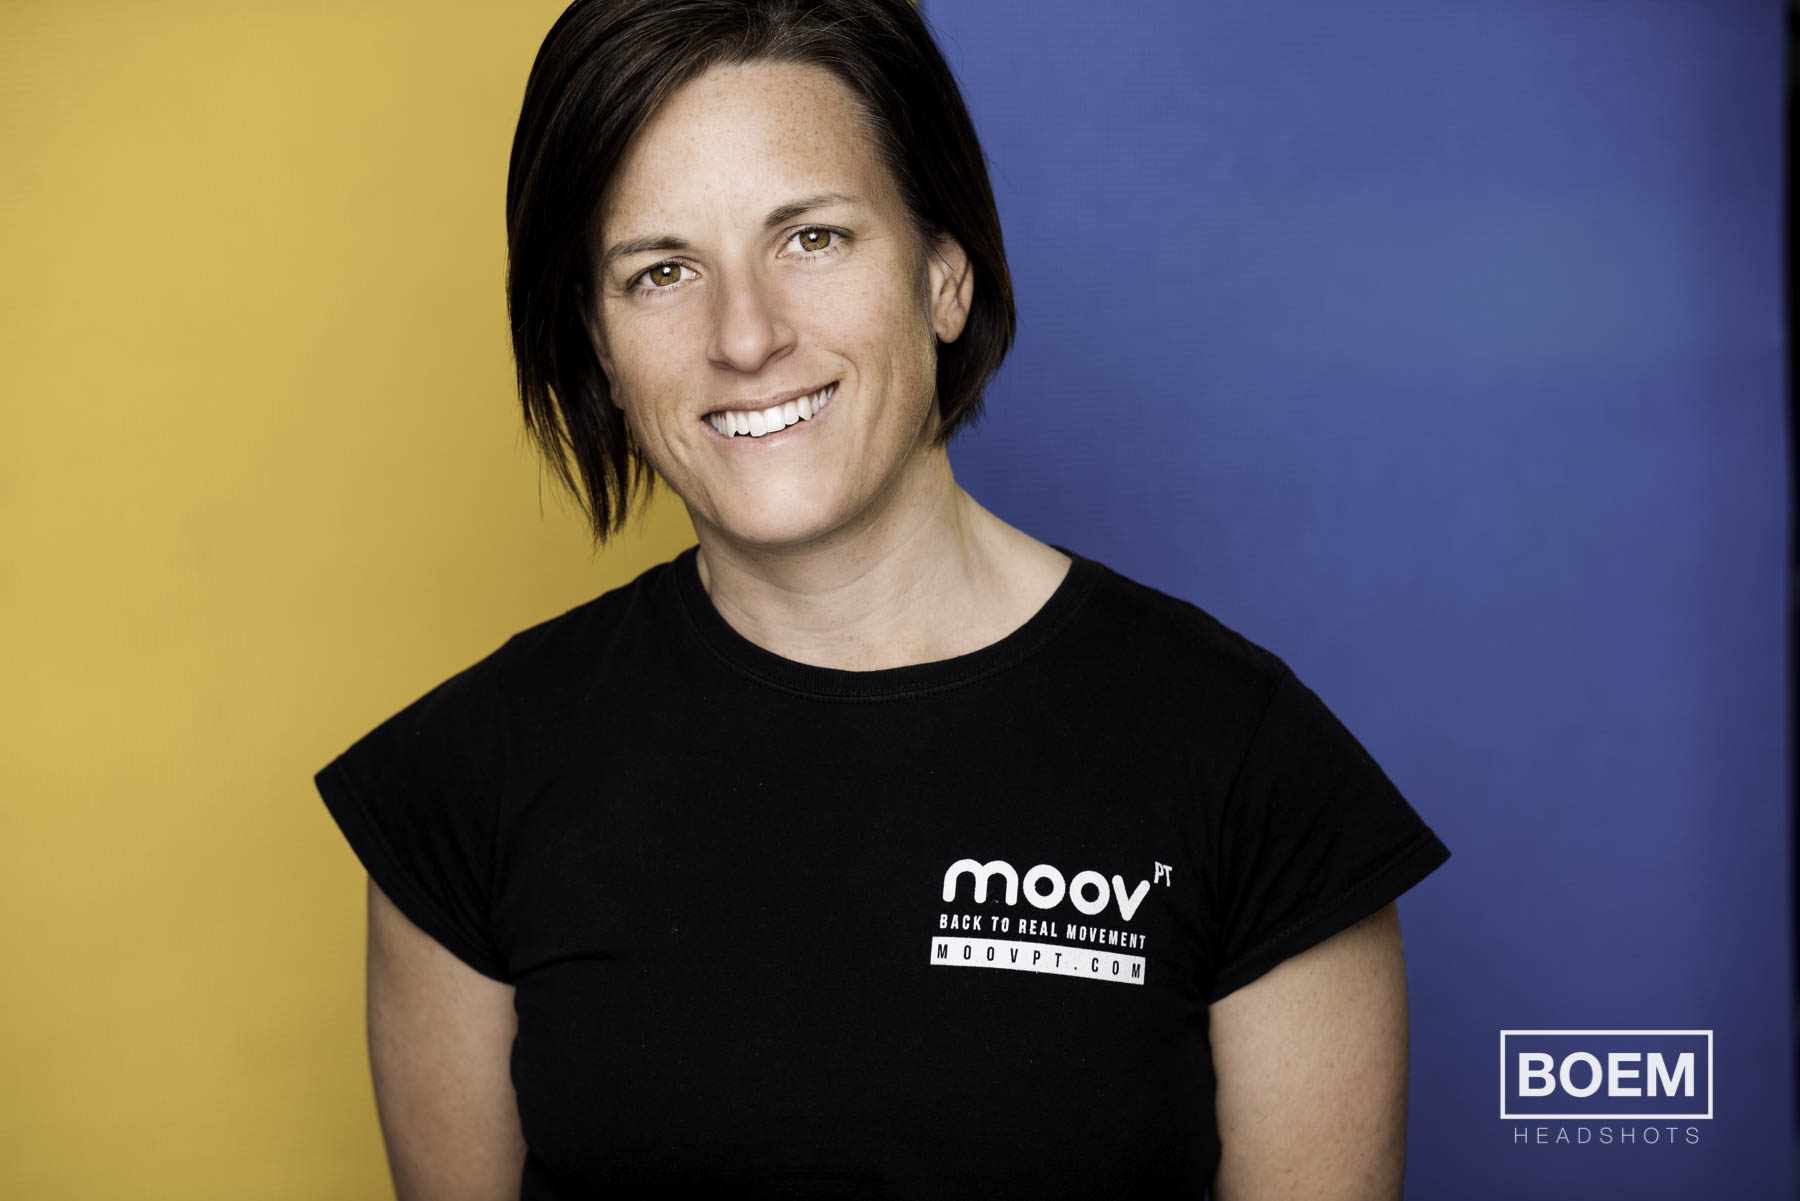 Mary and i have been working together for a long time and i felt it was time we updated her headshots for her personal training business Moov PT. We incorporated her corporate colours in the shot and i'm super happy with this linkedin marketing headshot.